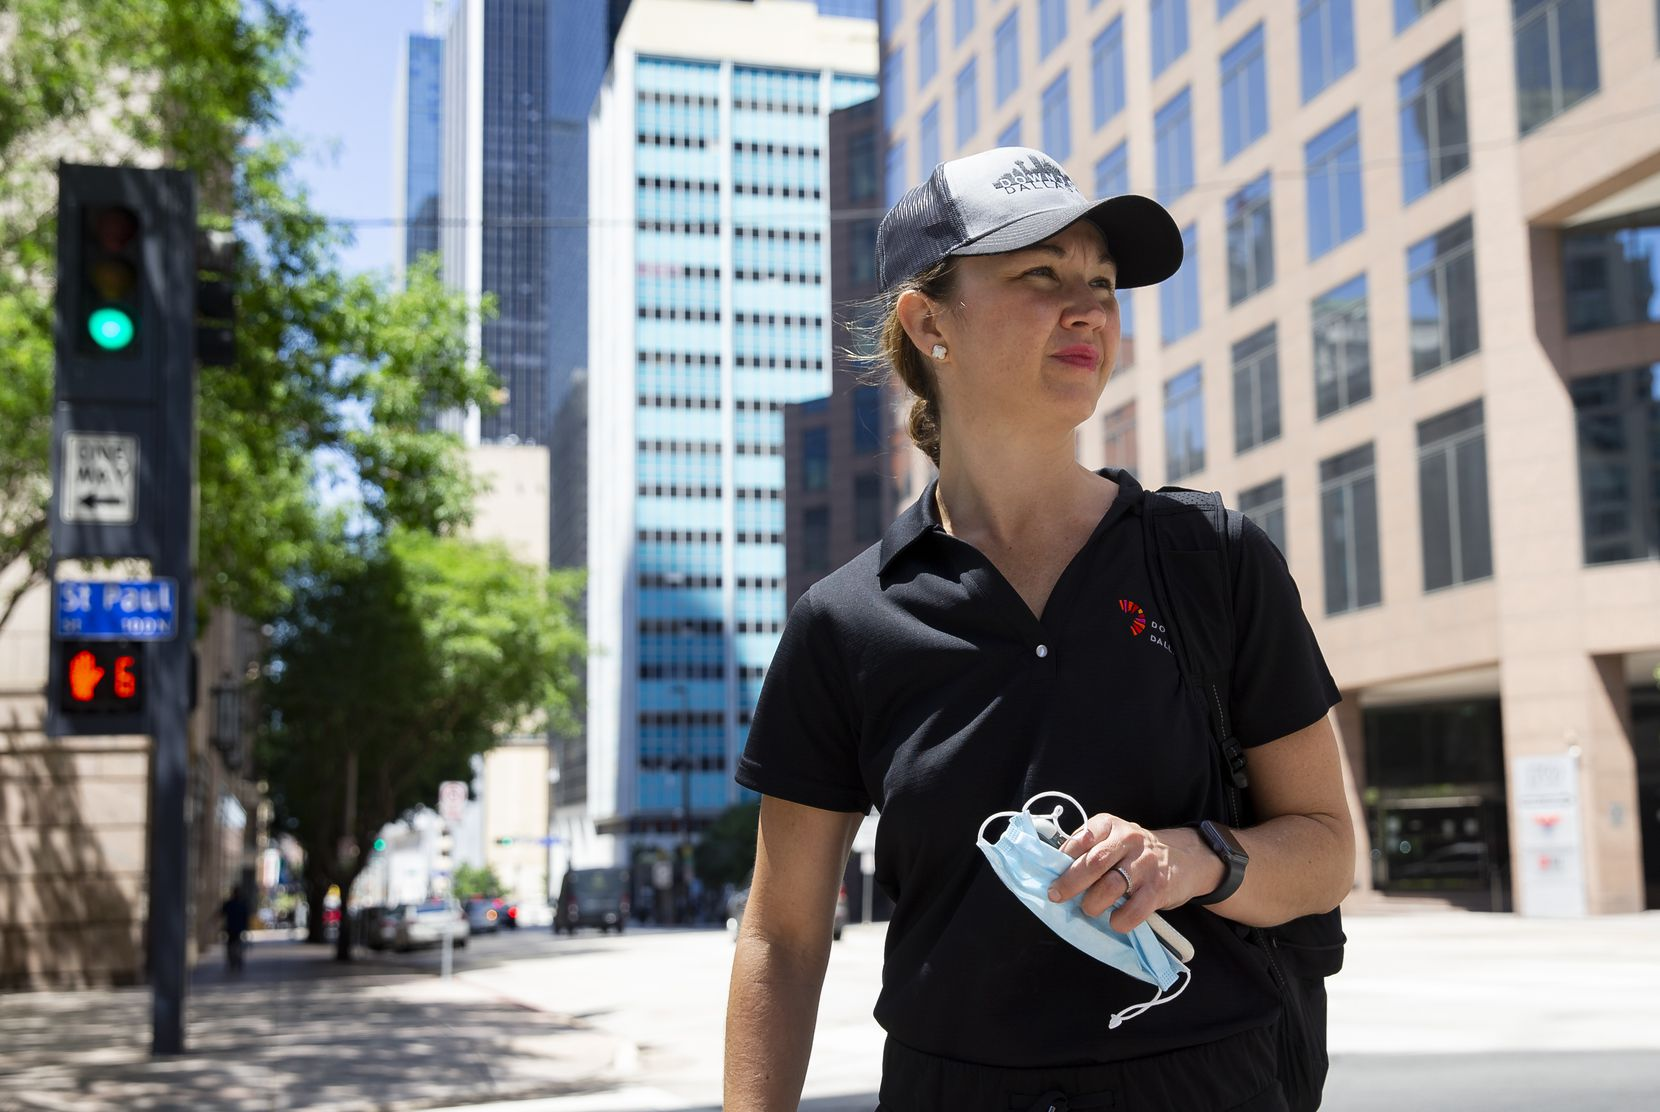 Downtown Dallas Inc. CEO Kourtny Garrett surveyed damage in downtown Dallas after racial justice protests in May led to damaged storefronts.